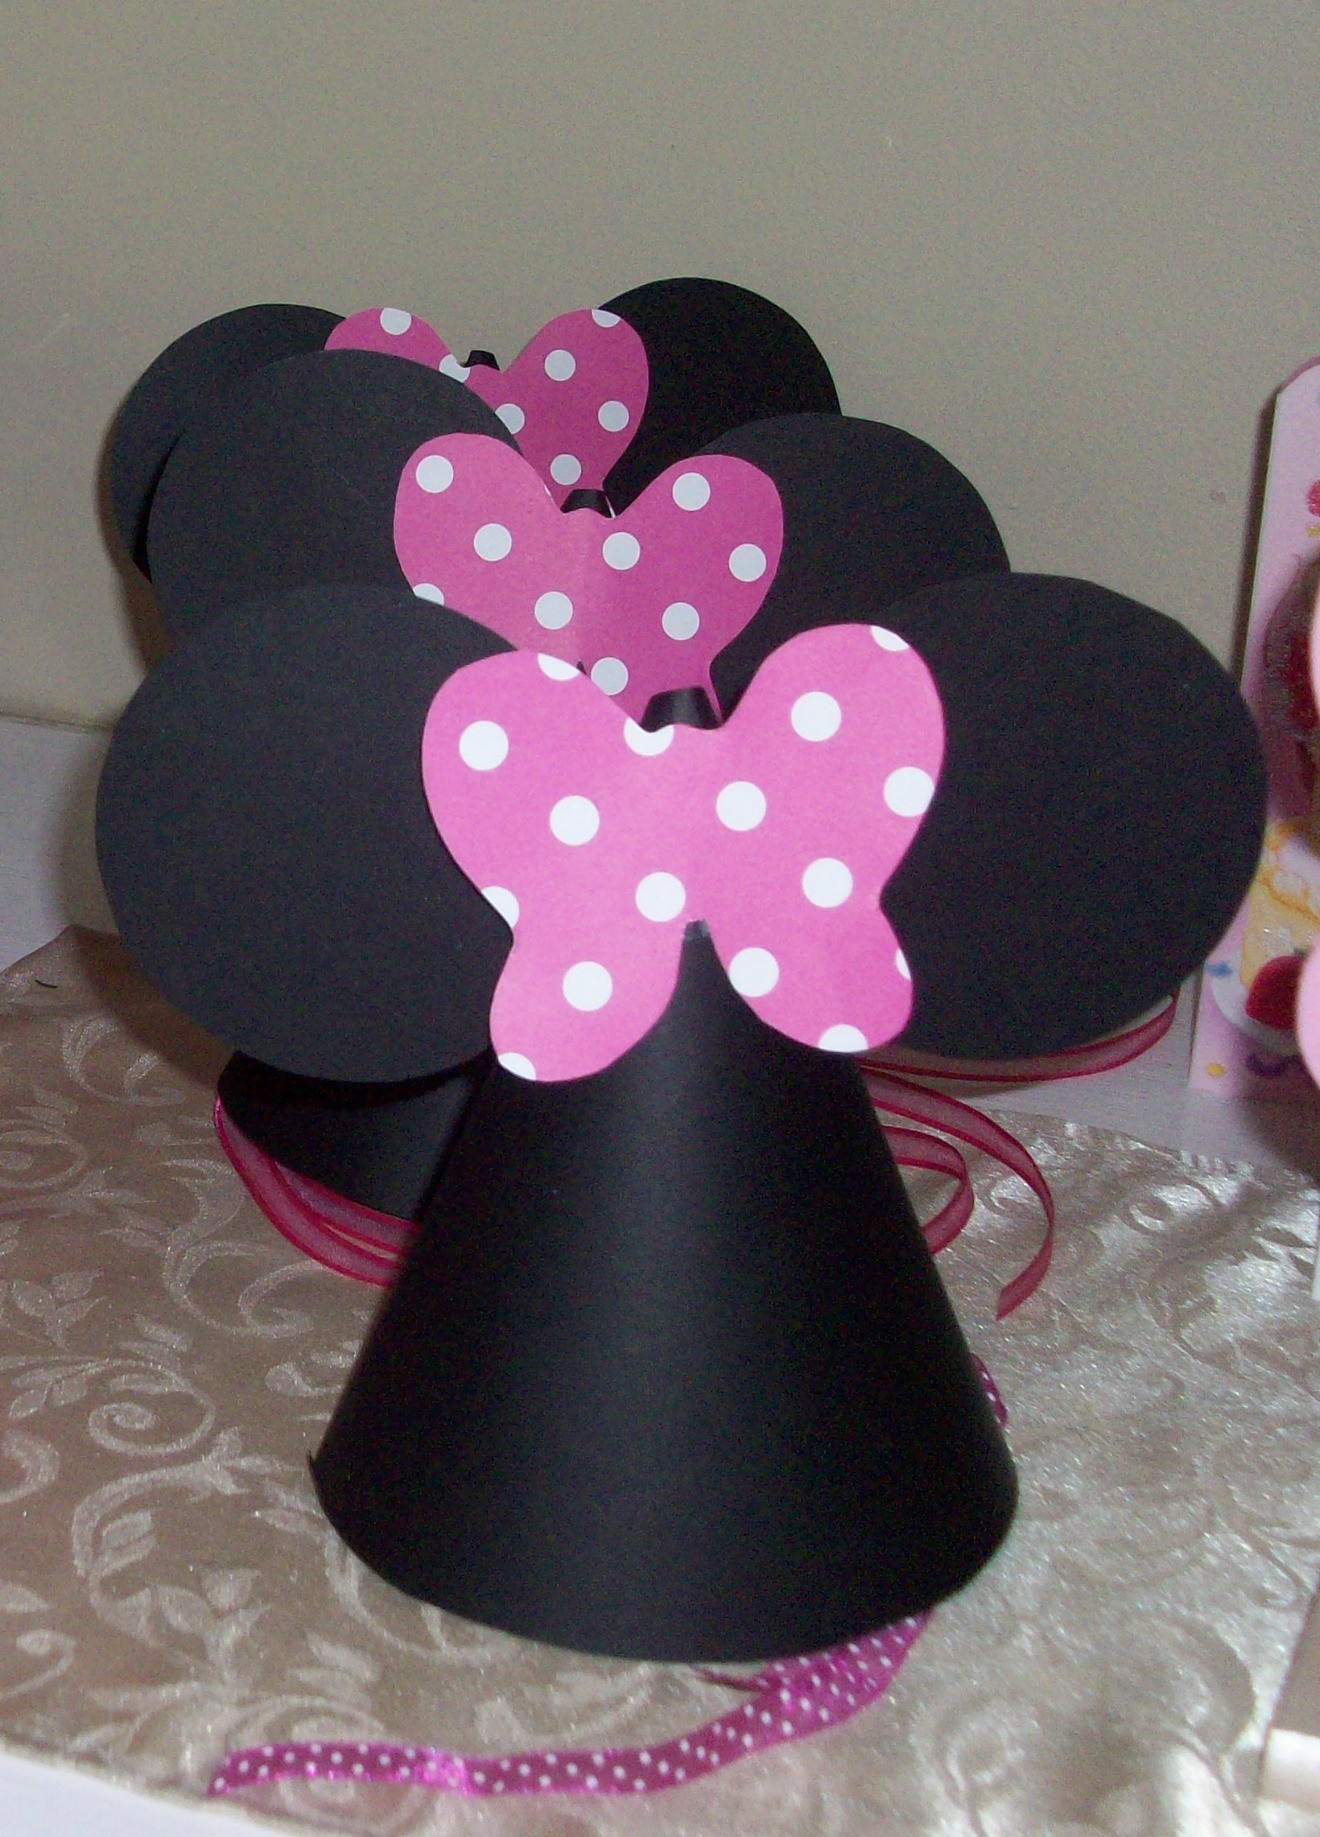 Best ideas about DIY Minnie Mouse Decorations . Save or Pin DIY Tutorial from A Catch My Party Member How to Make Now.